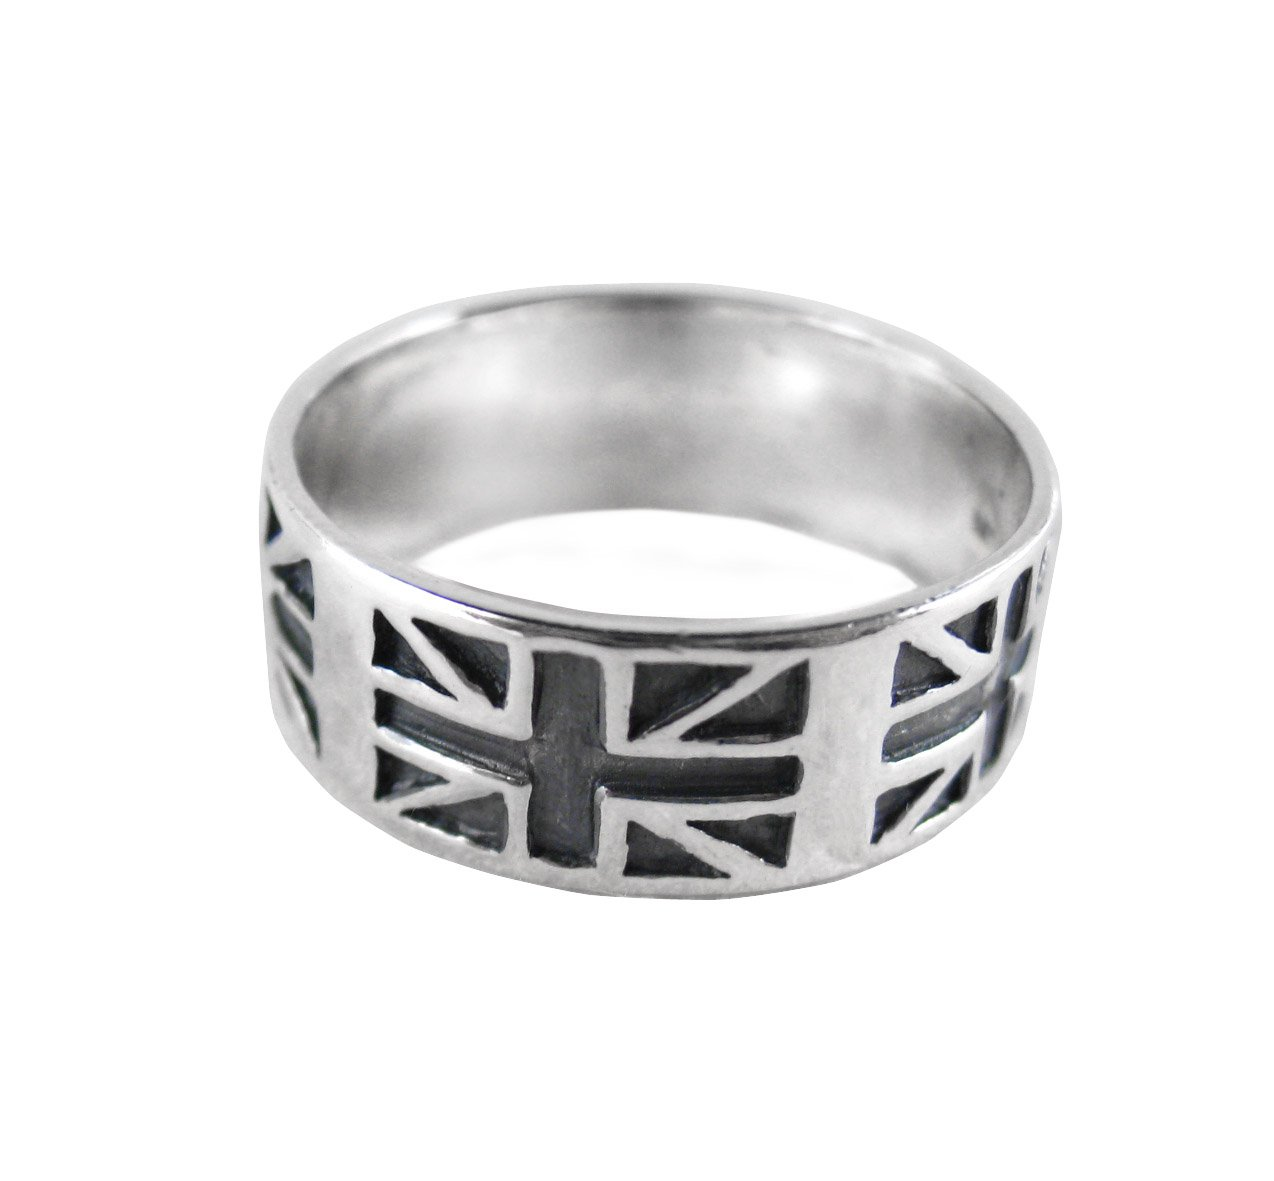 Sterling Silver Union Jack Band Ring, Size 11